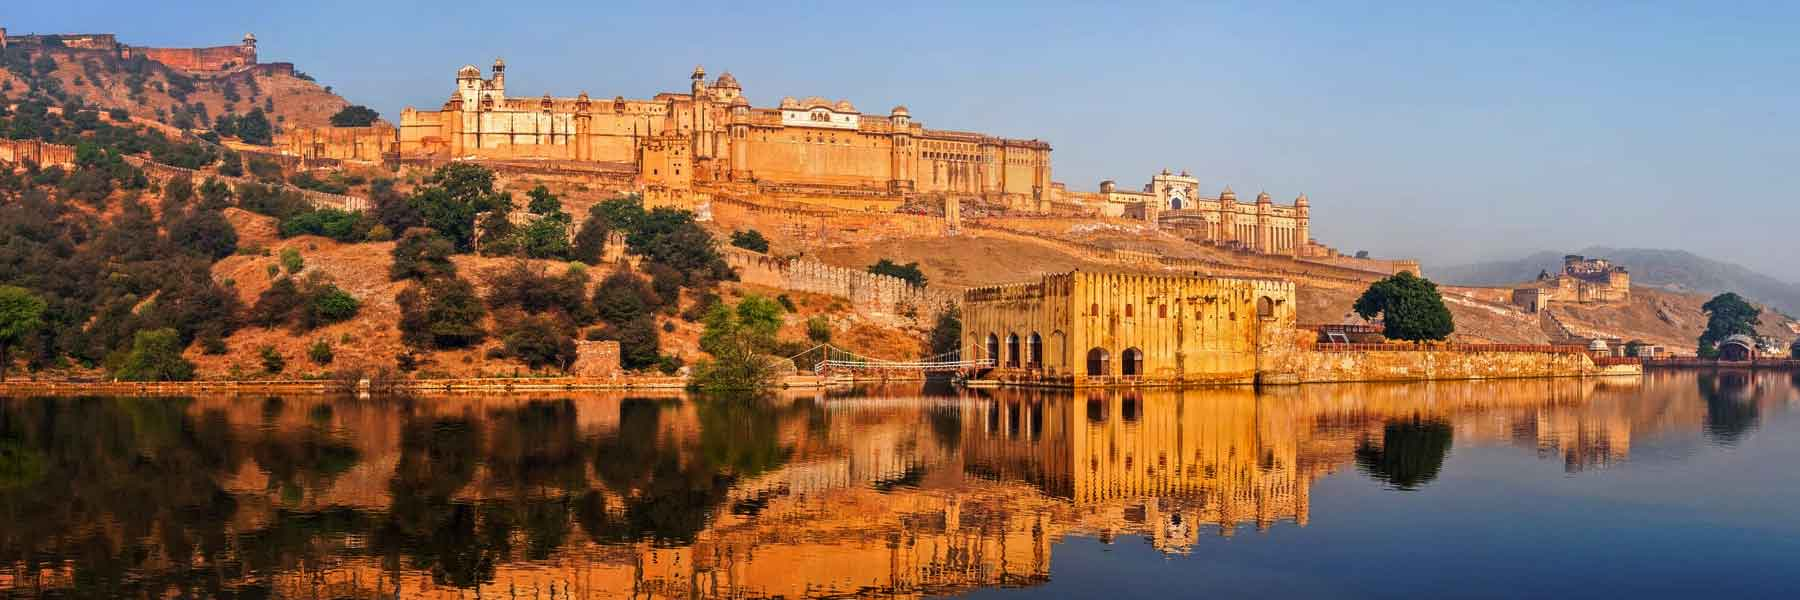 Enjoy The Jaipur Trip With Remarkable And Impressive Sightseeing